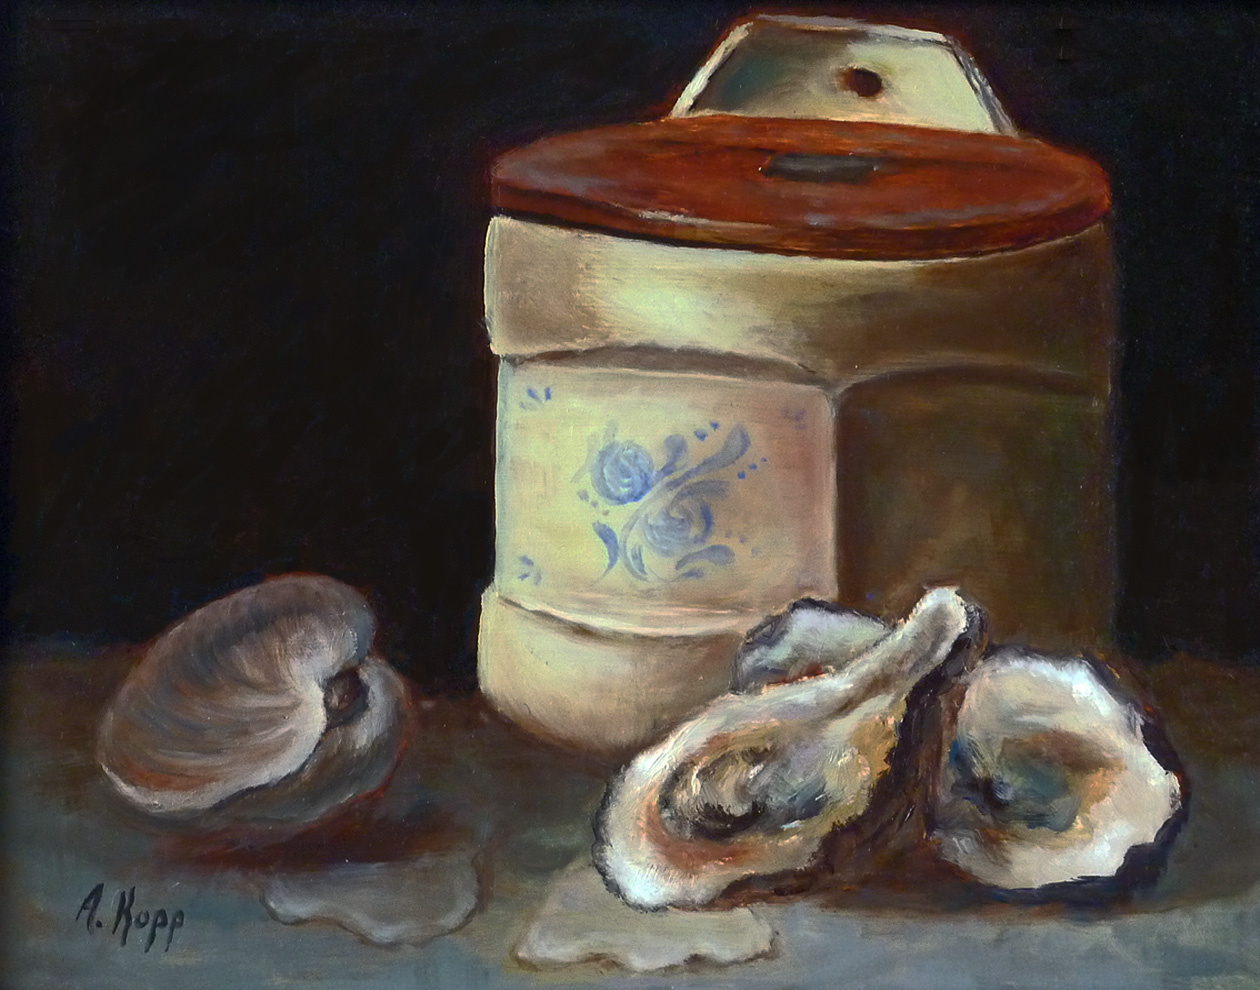 Treasures of the Chesapeake featuring clams and oysters with an antique salt box